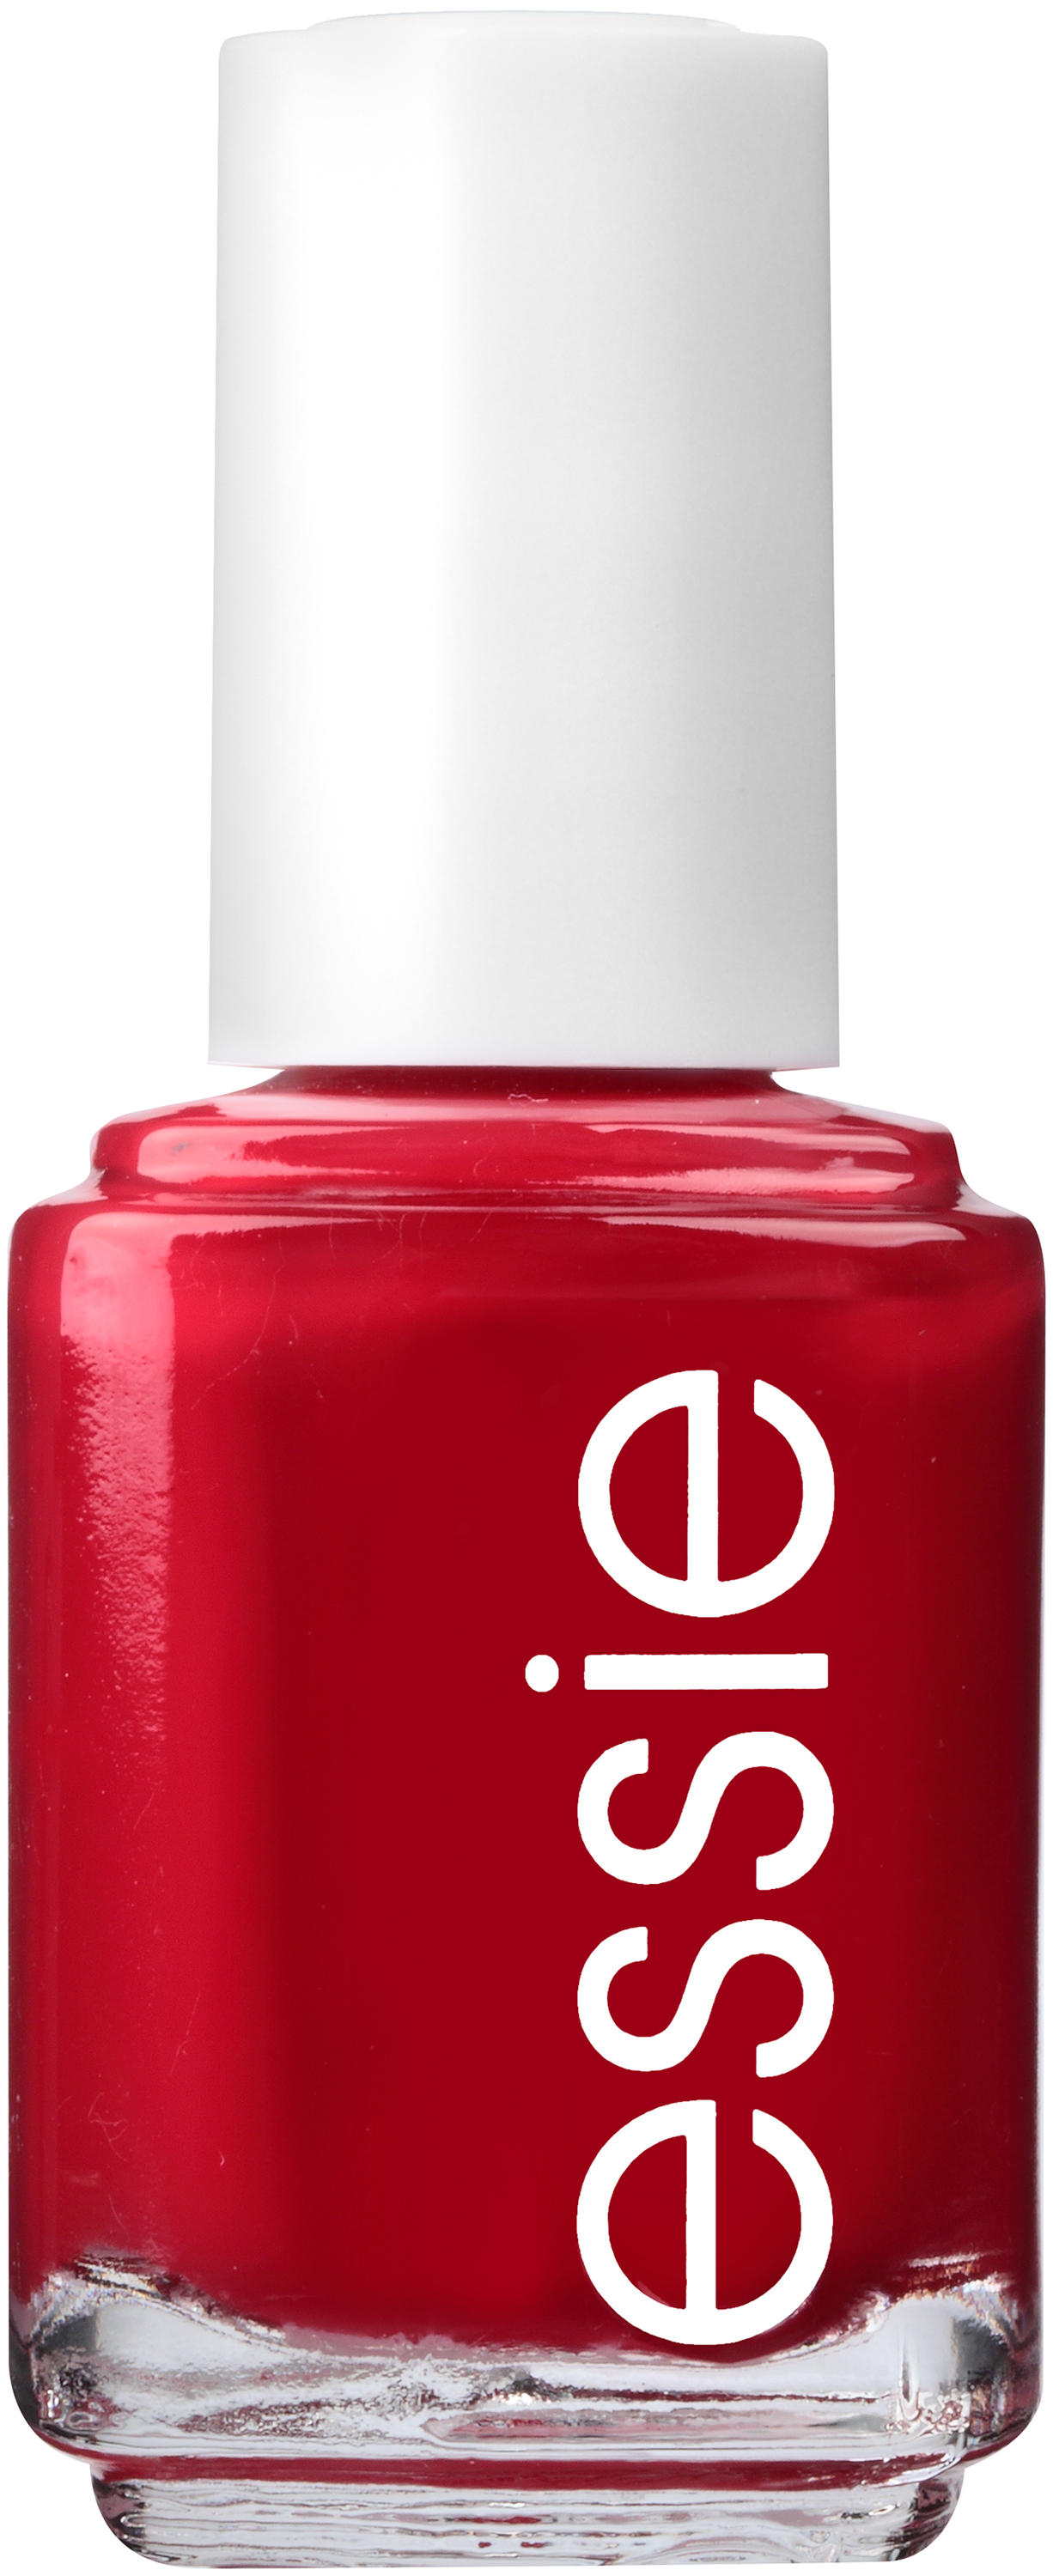 essie Winter Collection 2015 Nail Color Shall We Chalet?